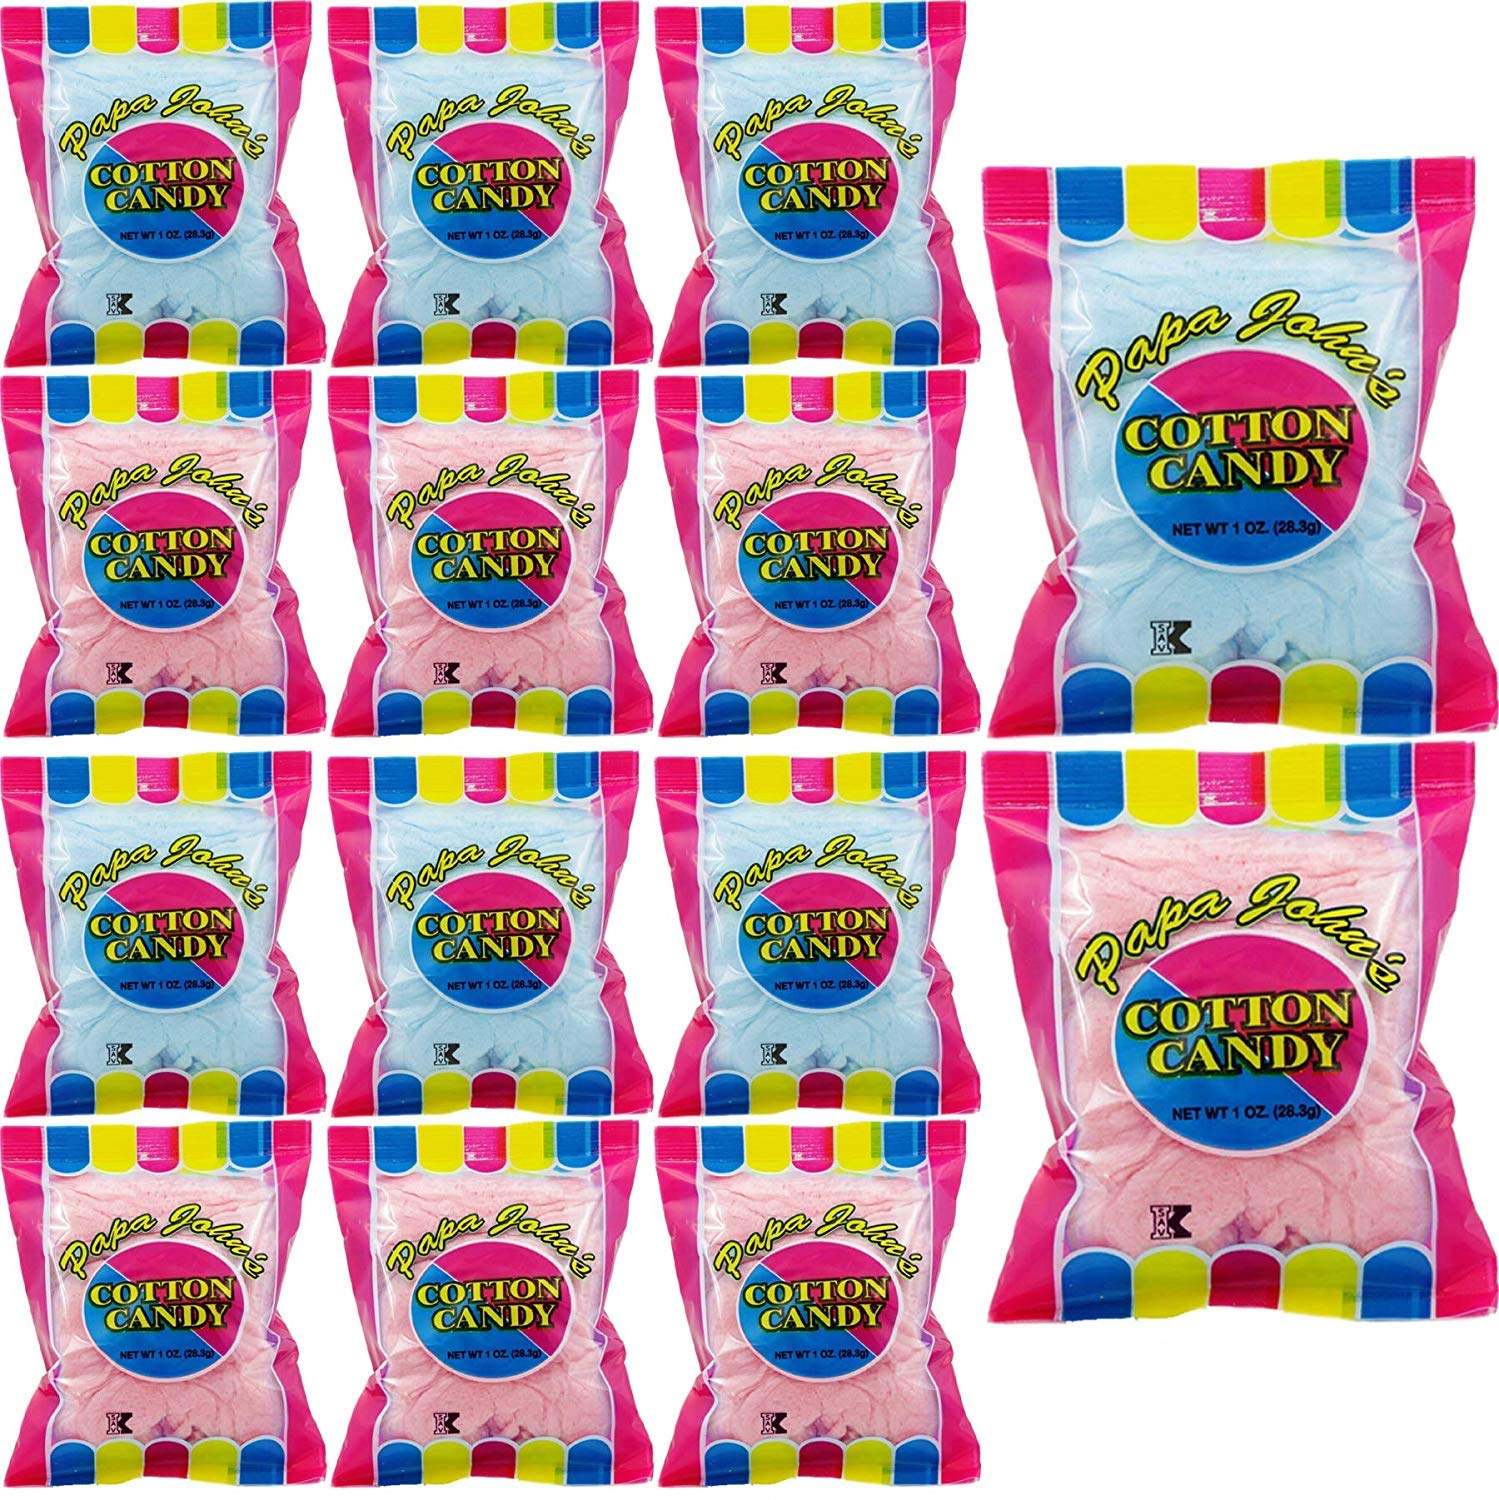 Papa John's Cotton Candy Blue and Pink Party Flavors Supplies Birthday Treats for Kids, Kosher, 1oz Bag (12-Pack) by Papa John's (Image #3)